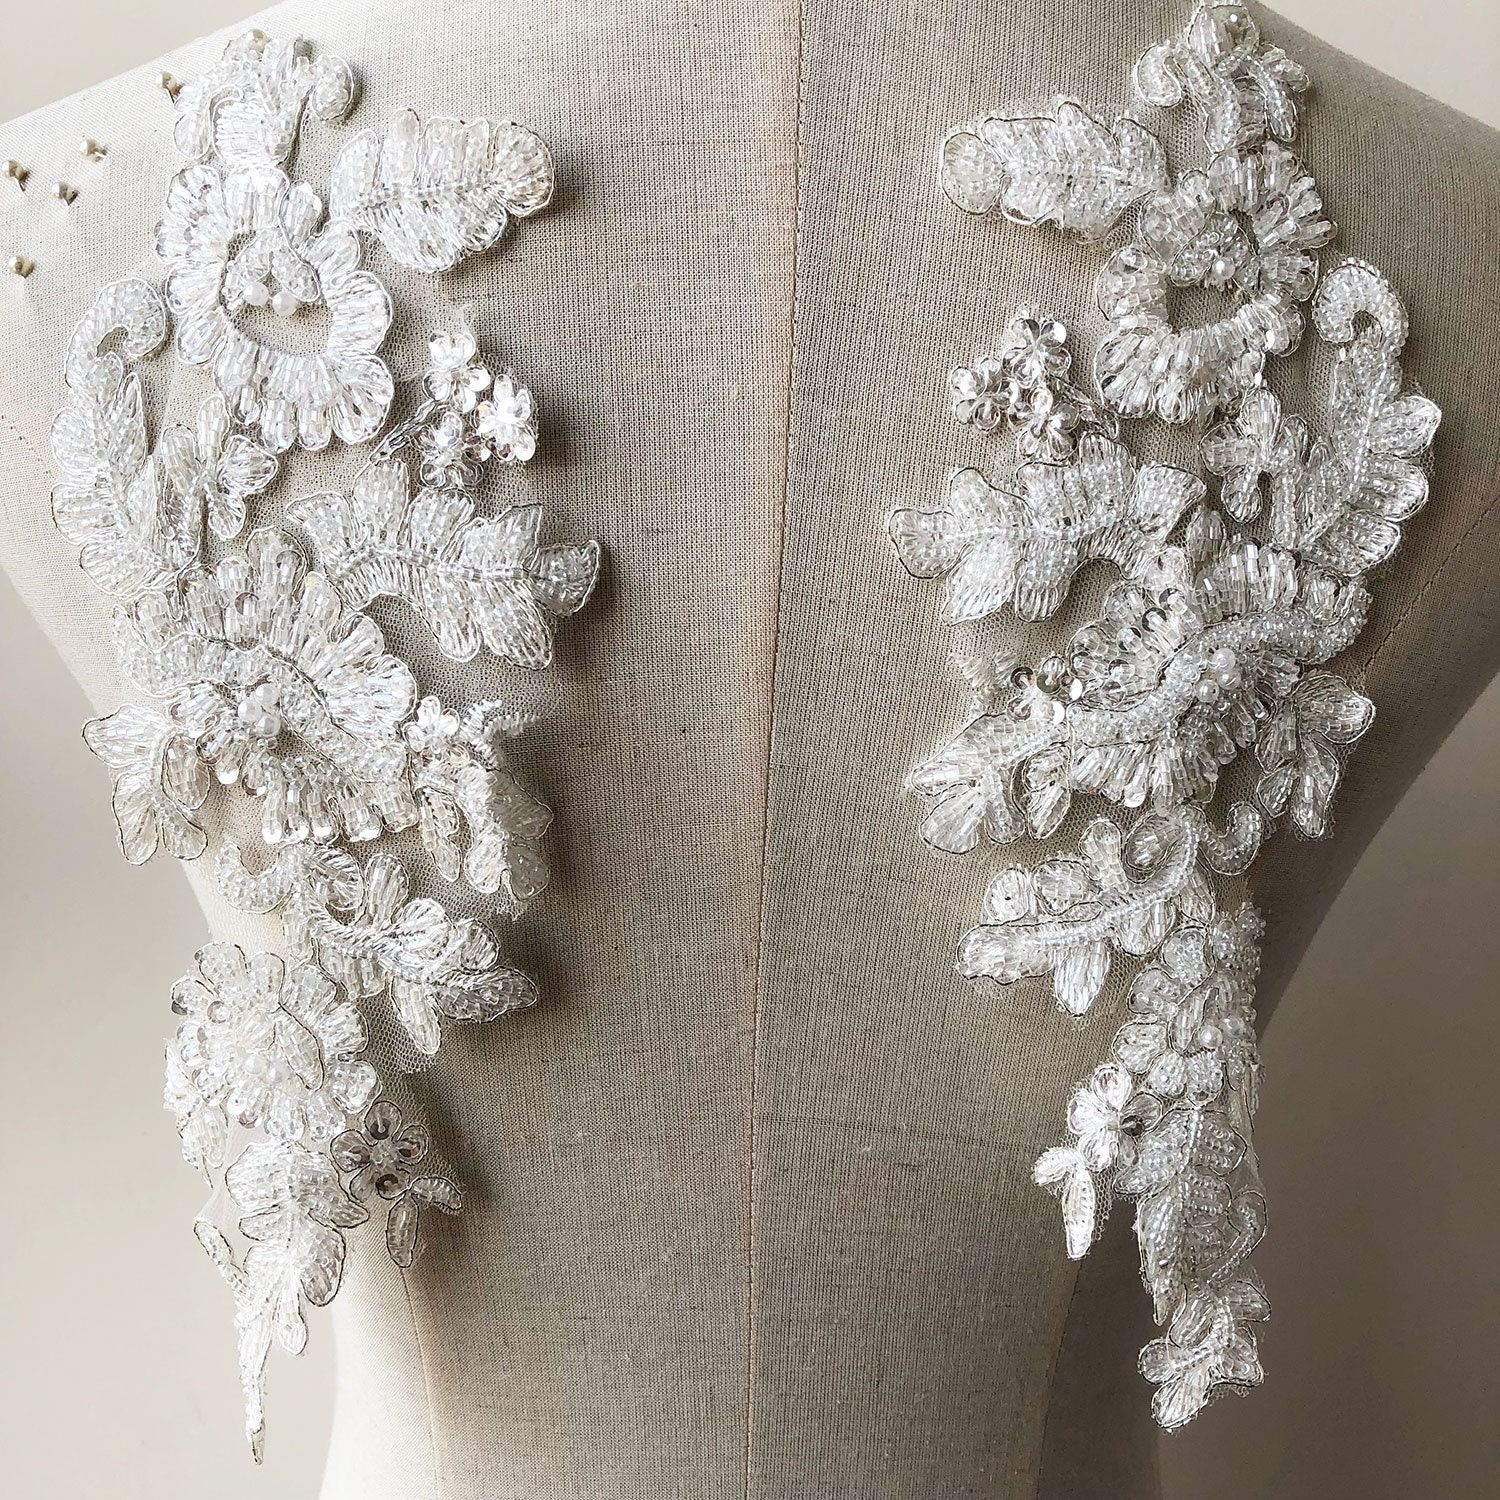 OFF-White Sequined Lace Applique Beading Lace Appliques Silver ... a58599b269ce